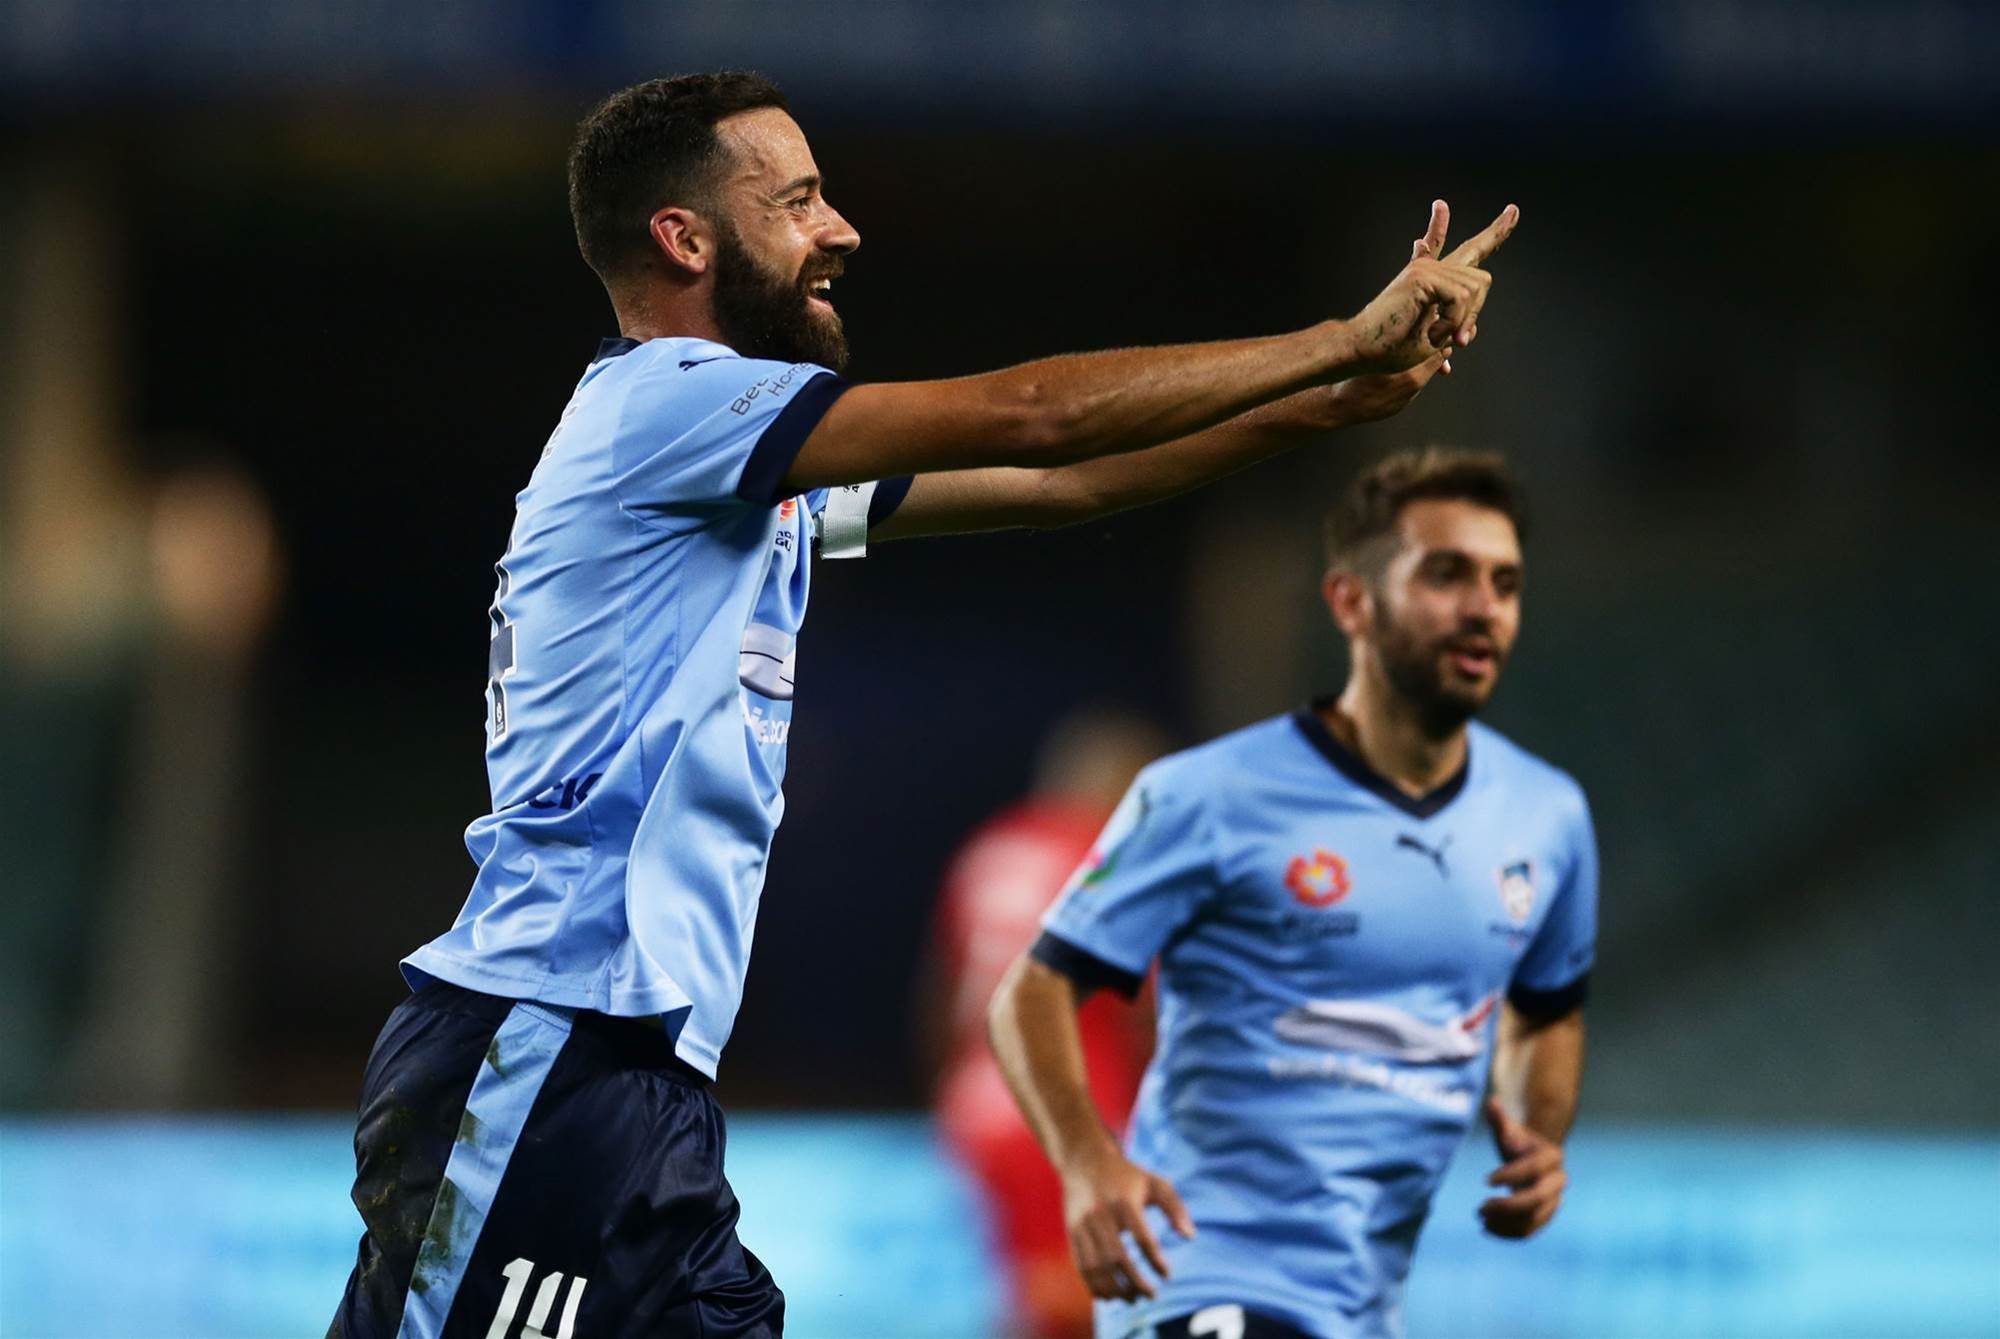 Sydney v Adelaide - How Twitter Reacted